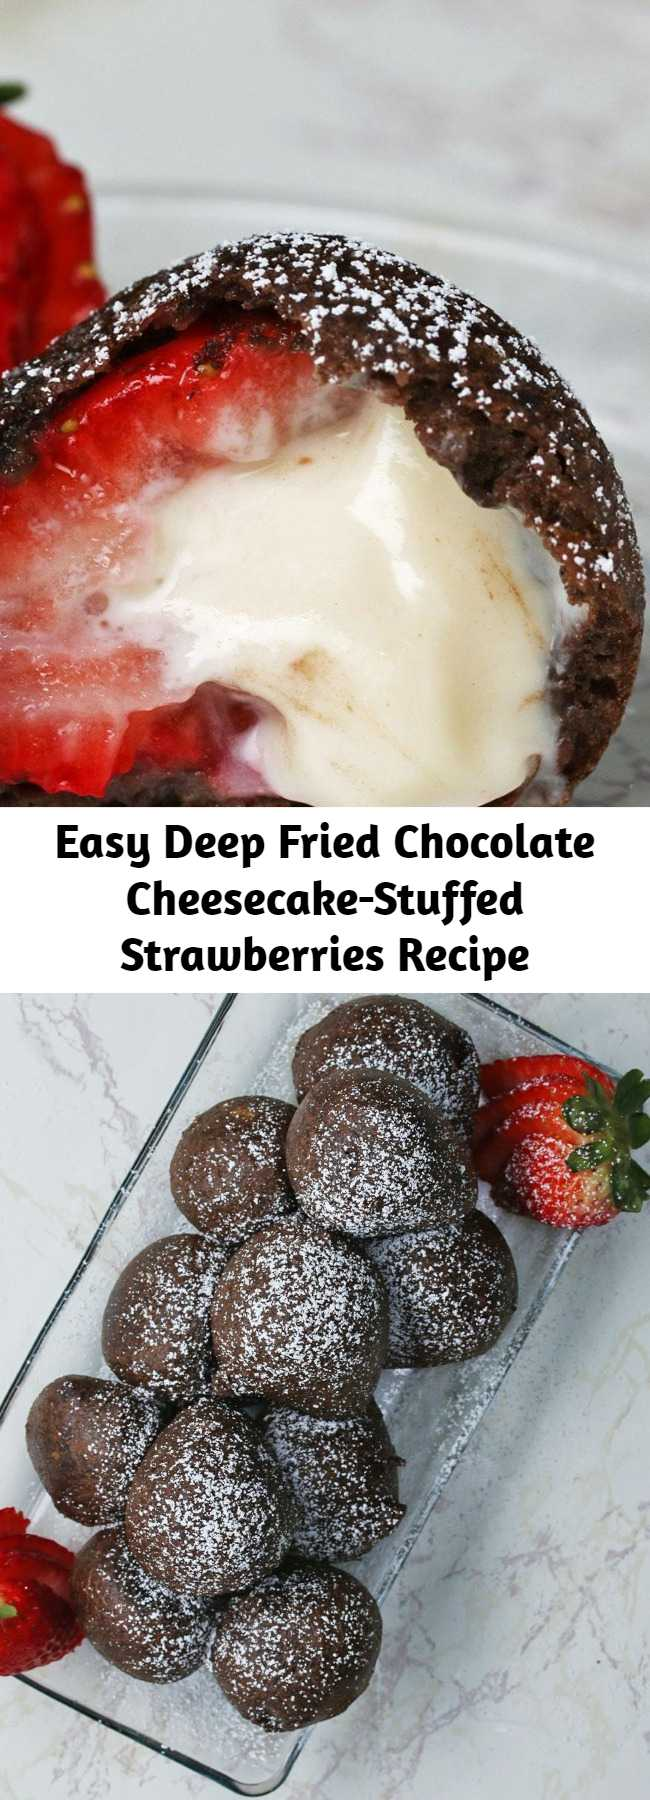 Easy Deep Fried Chocolate Cheesecake-Stuffed Strawberries Recipe